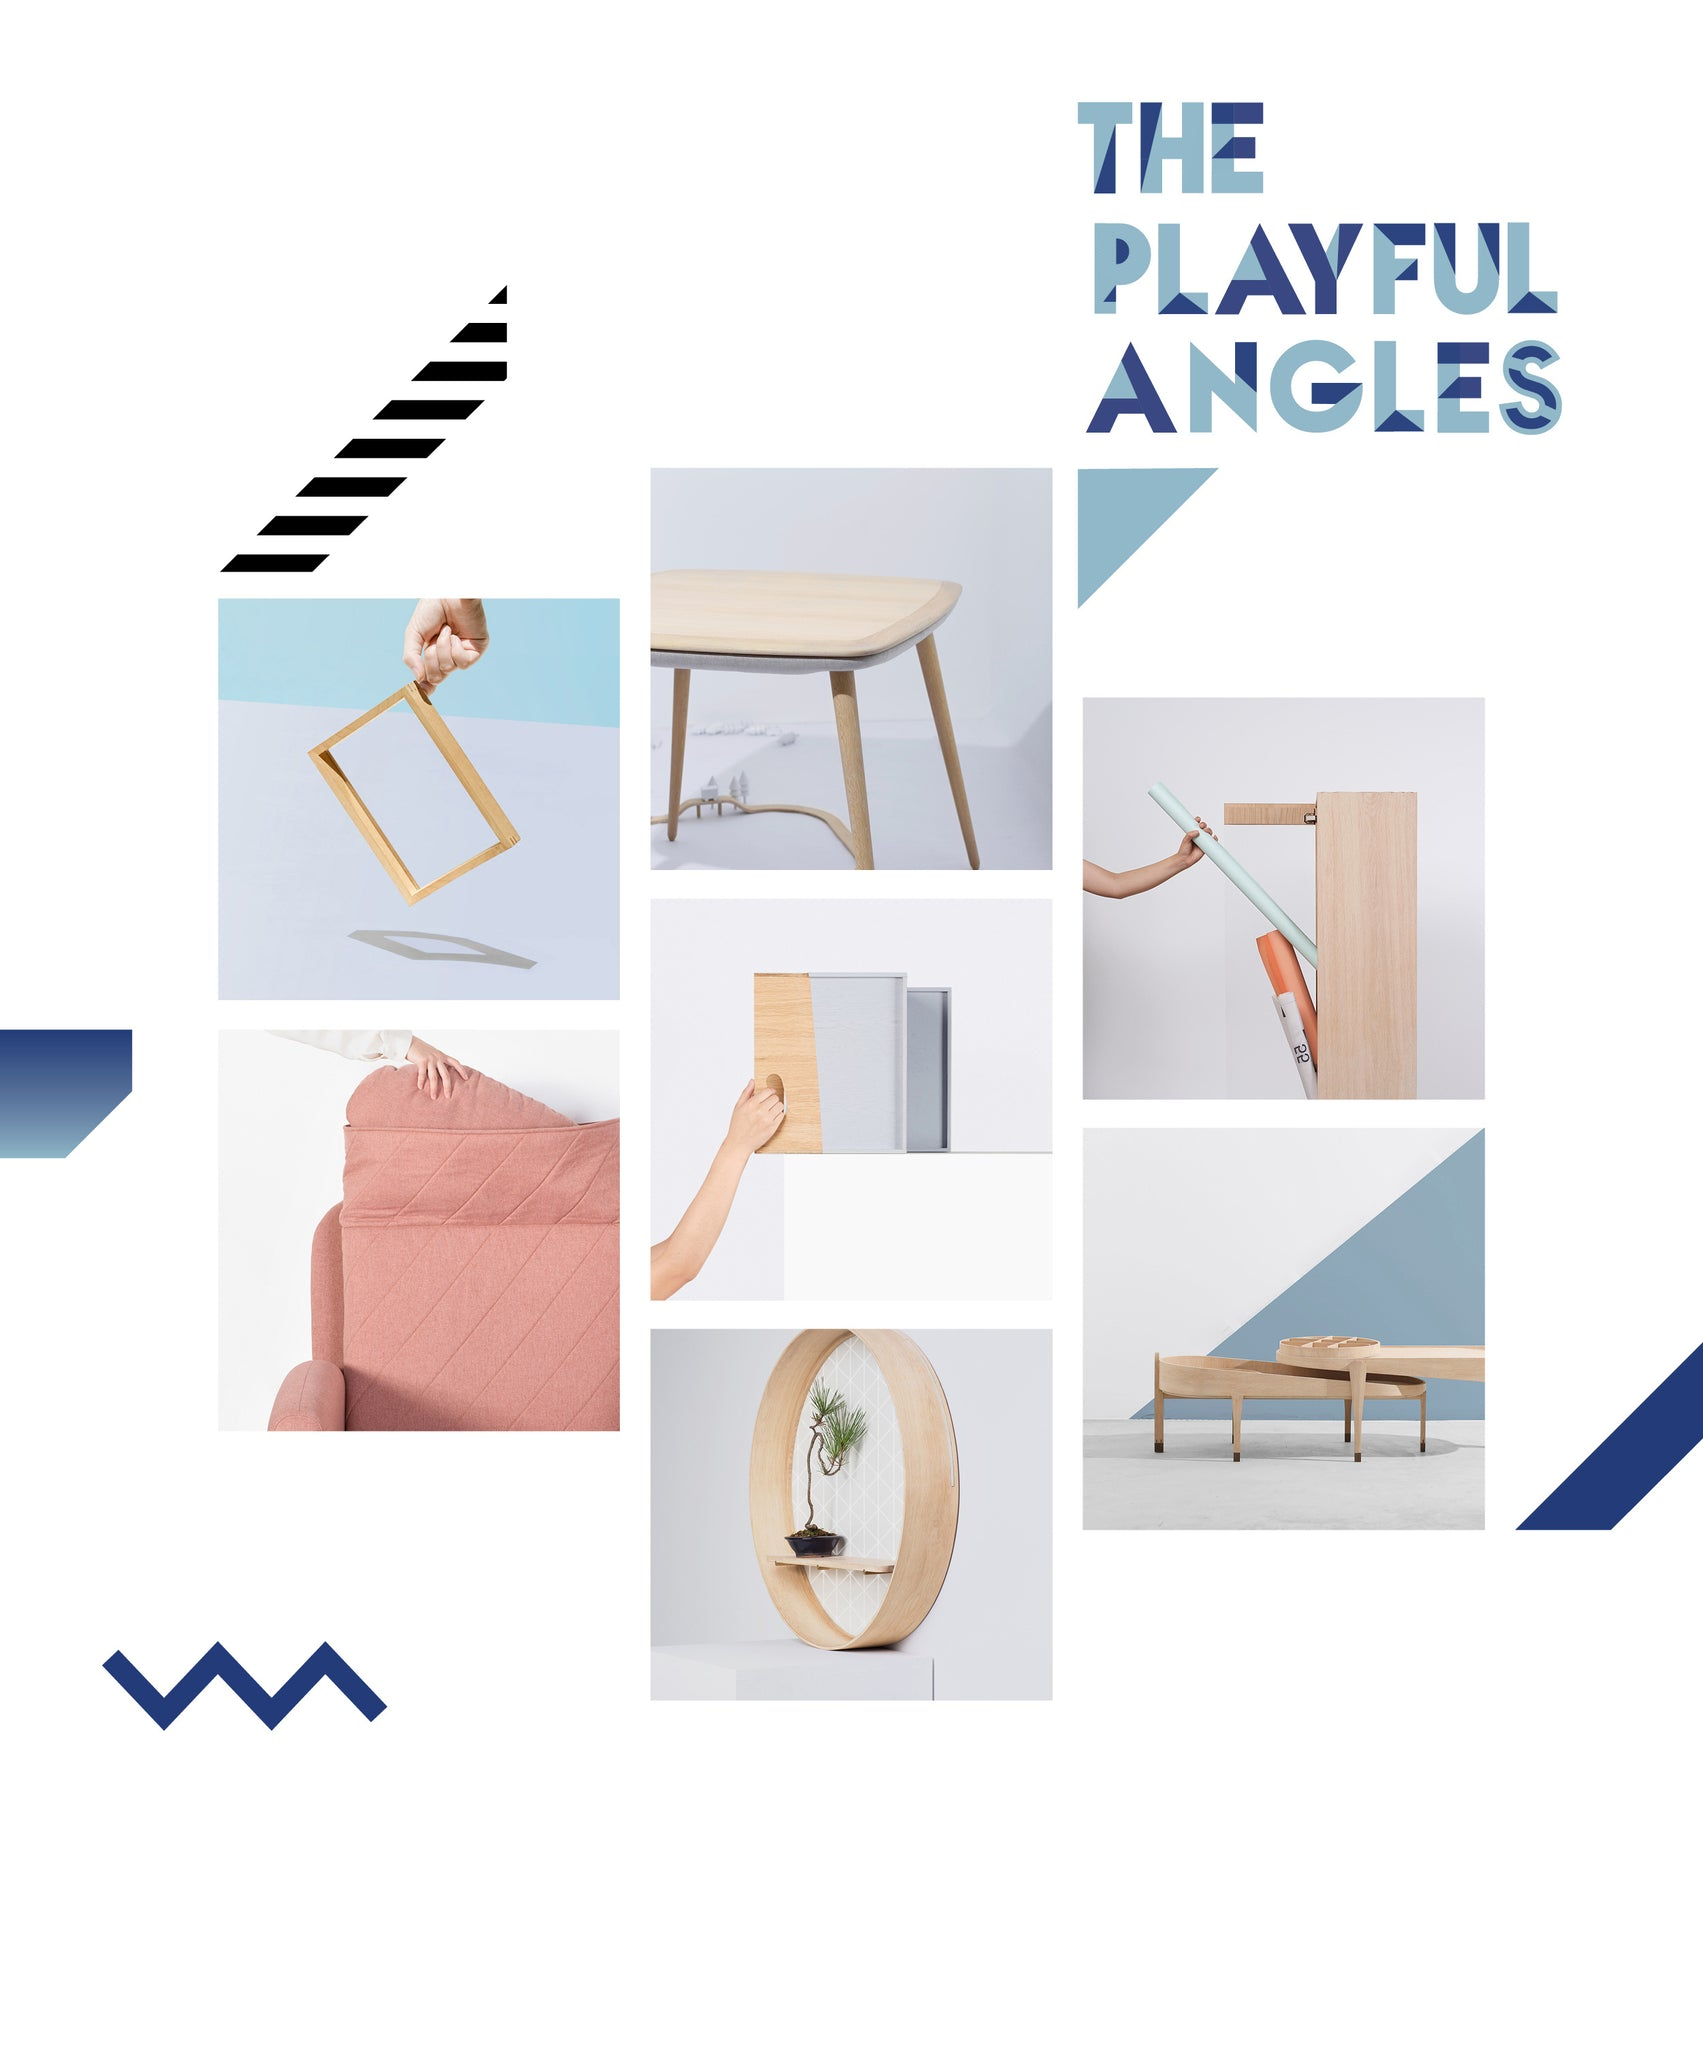 The Playful Angles Furniture Collection by Ziinlife